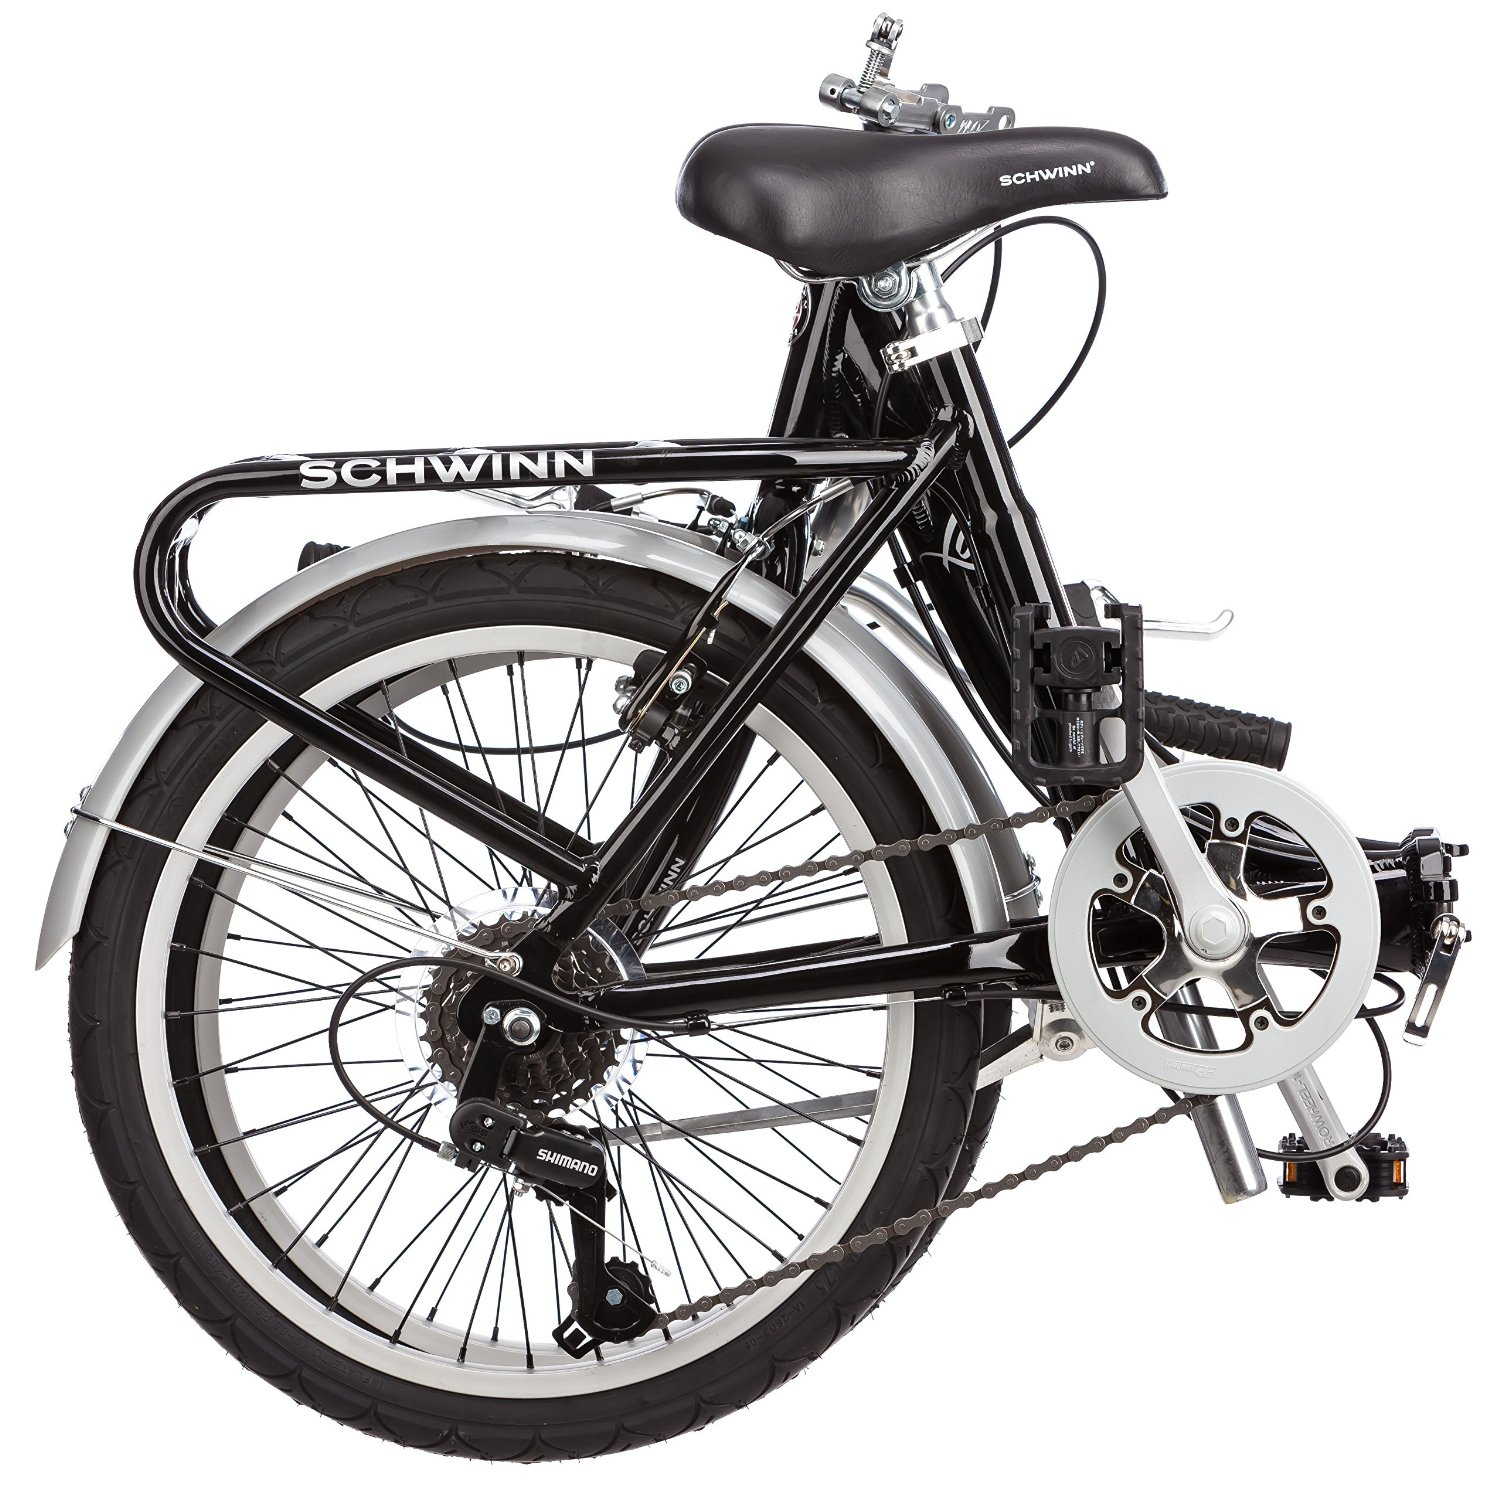 Schwinn Loop Folding Bike Review